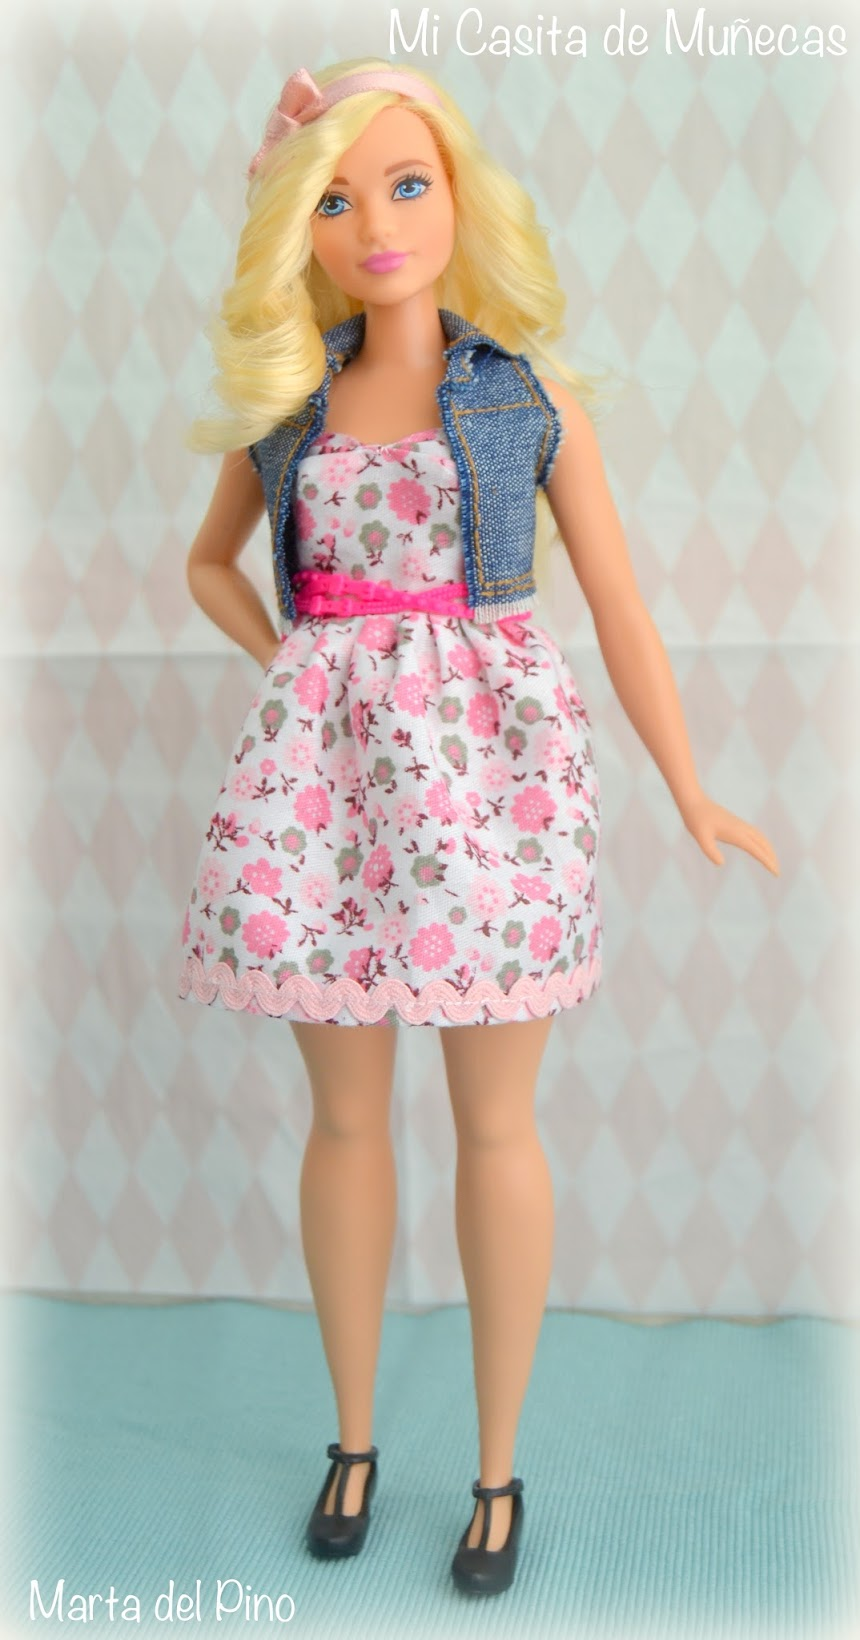 Barbie fashionistas 2016, curvy, tall, petit,  barbie nuevo cuerpo, barbie new body, mi casita de muñecas